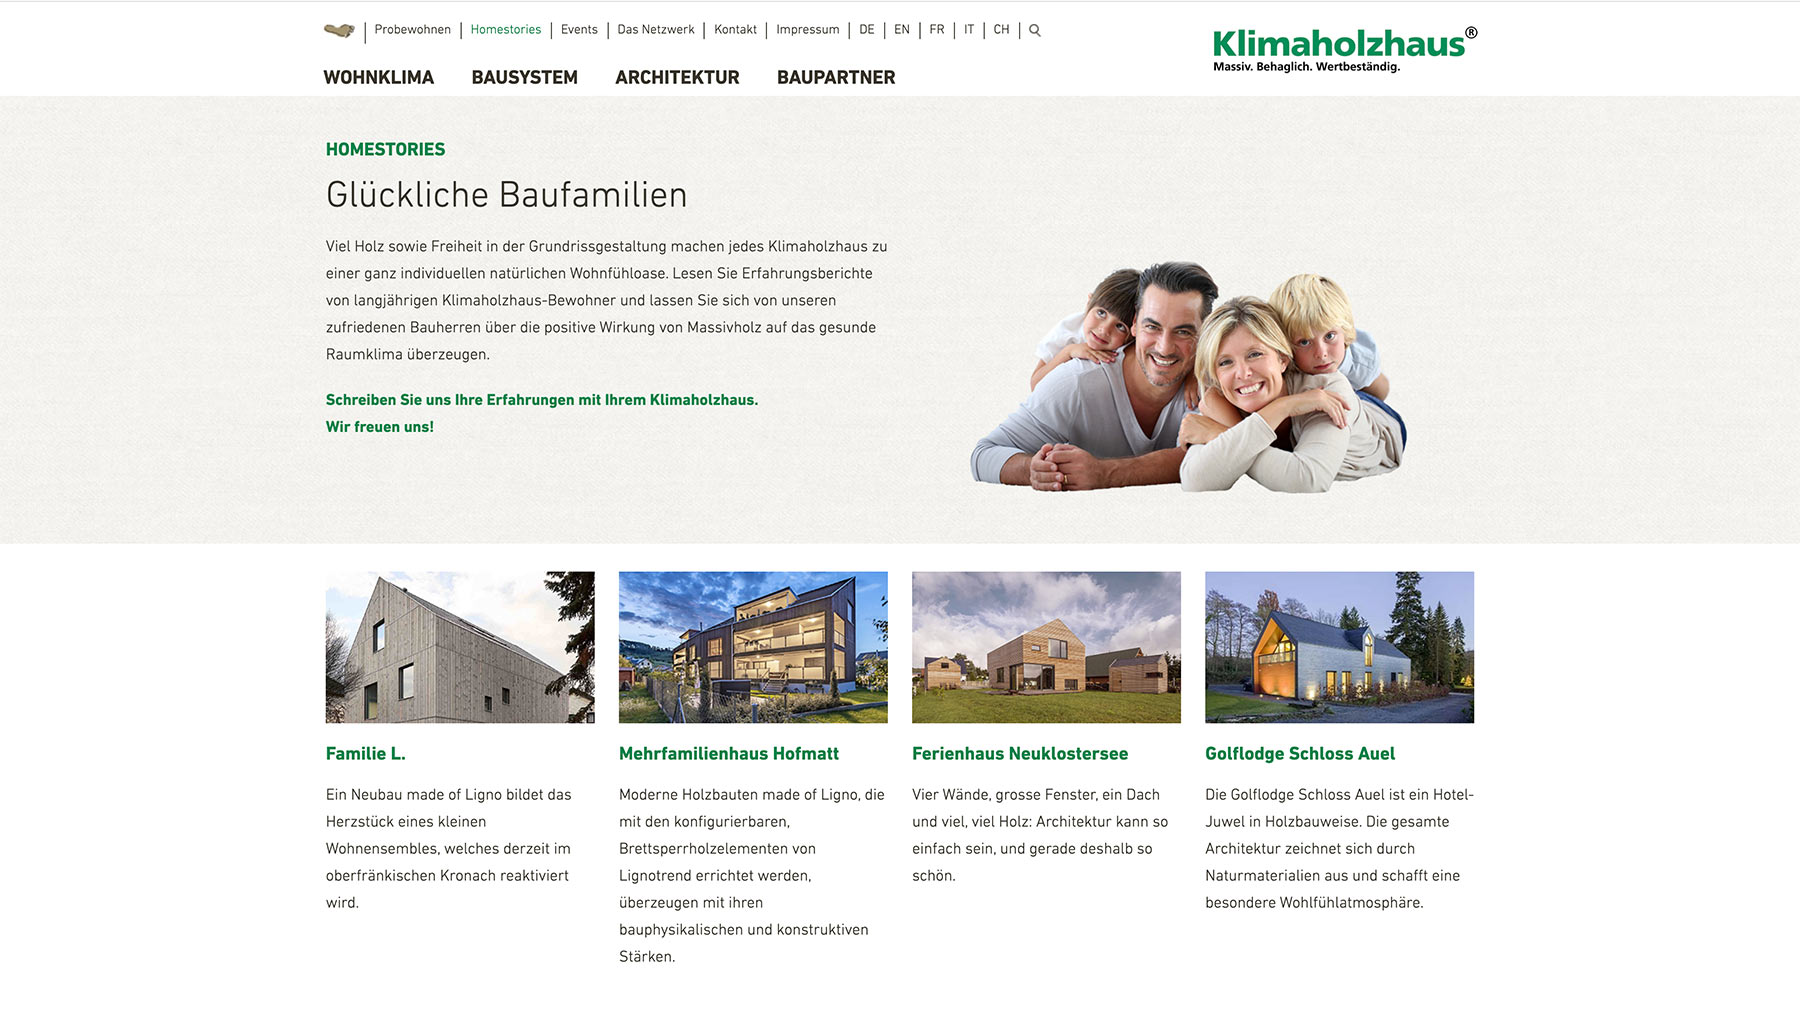 Klimaholzhaus Webdesign Typo3 Basis Screendesign Homestories